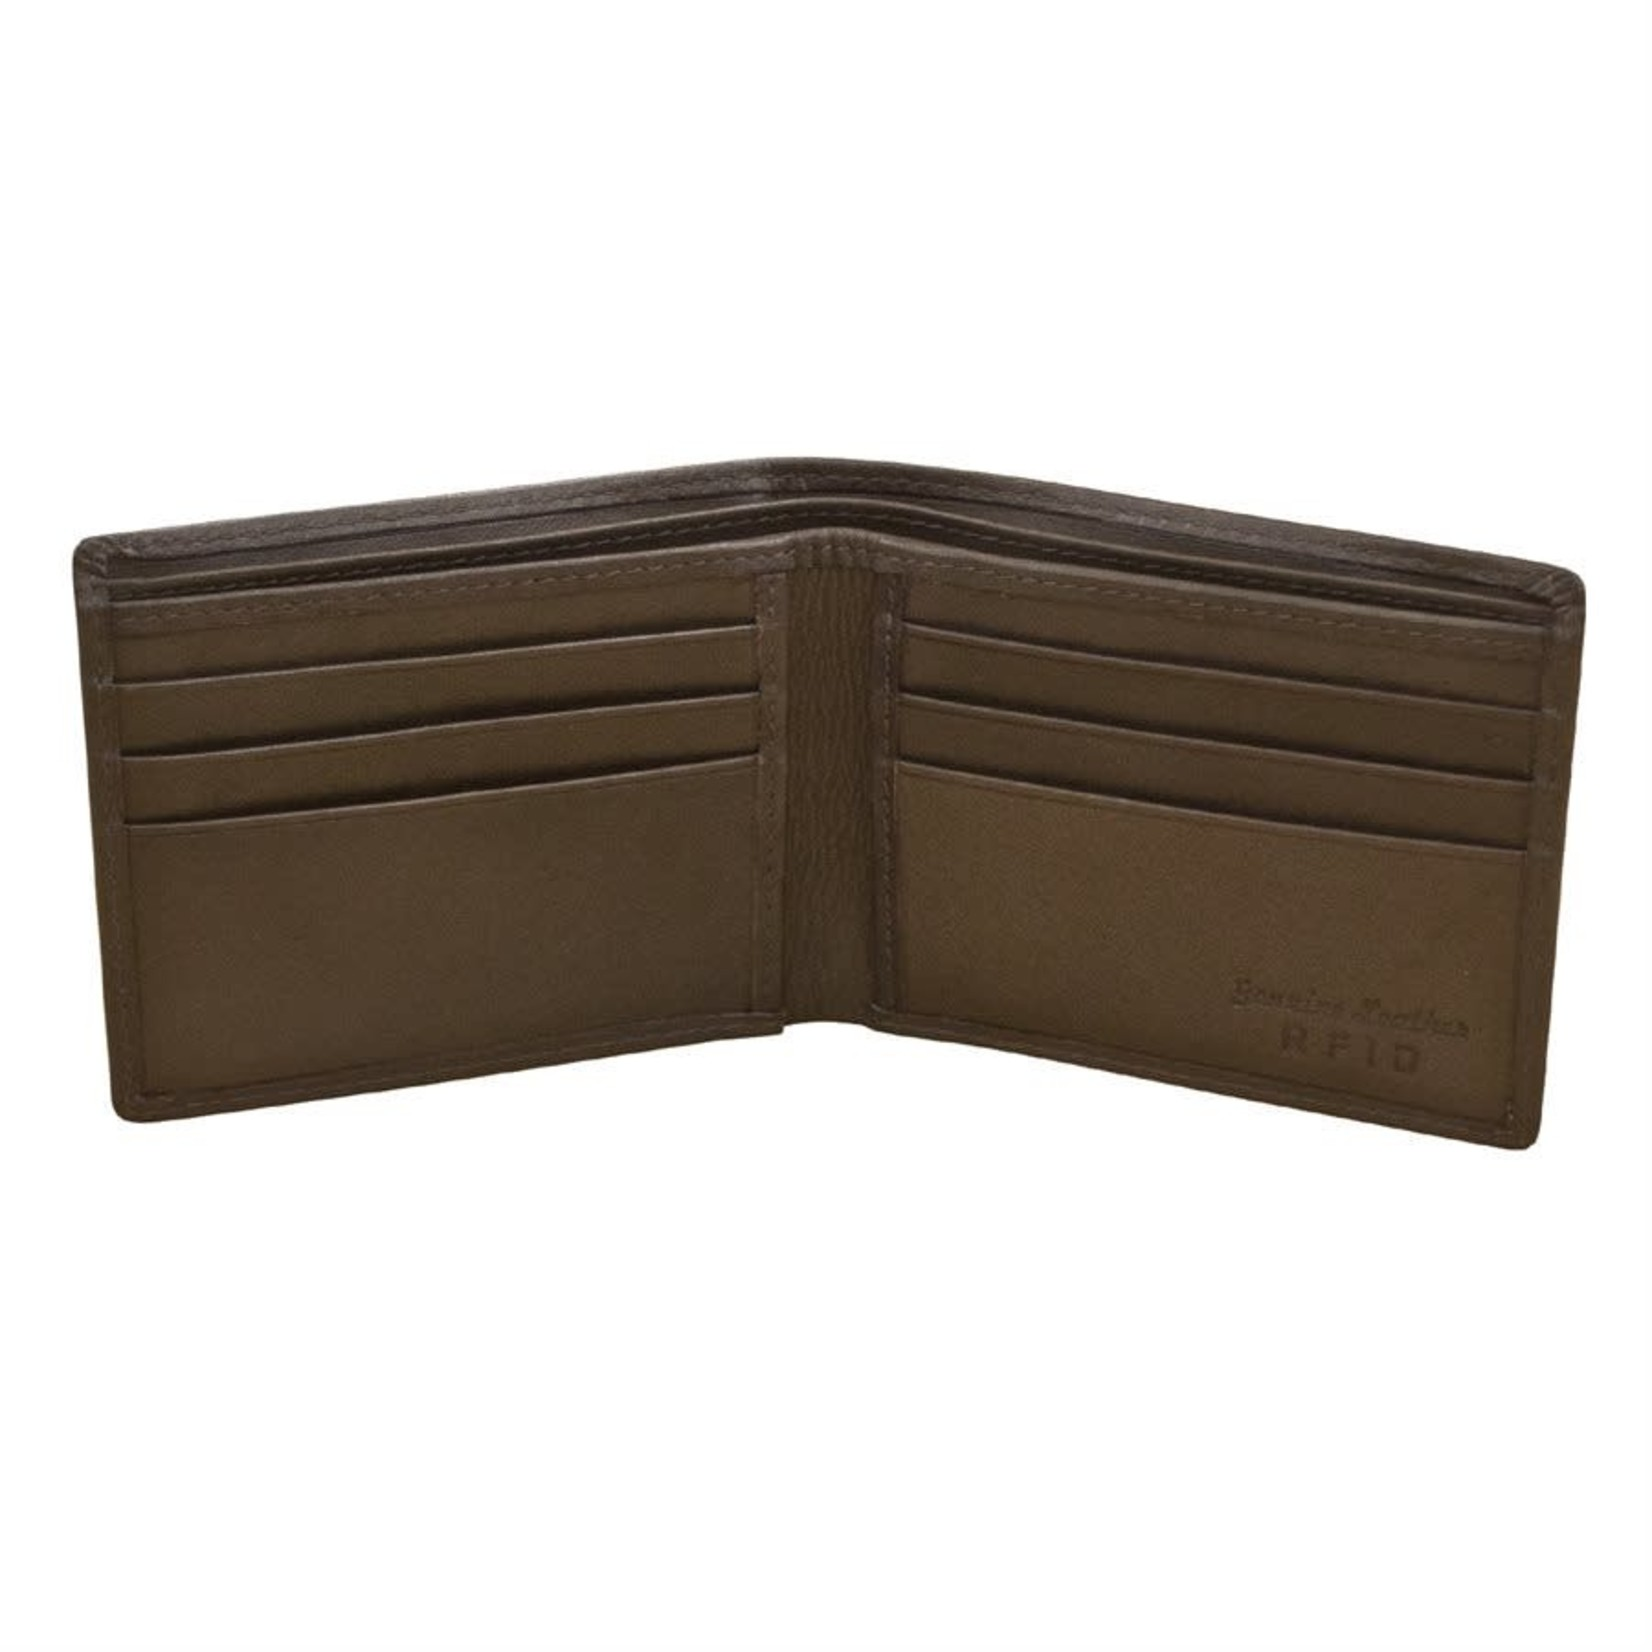 Leather Handbags and Accessories 7120 Brown - RFID BiFold Wallet